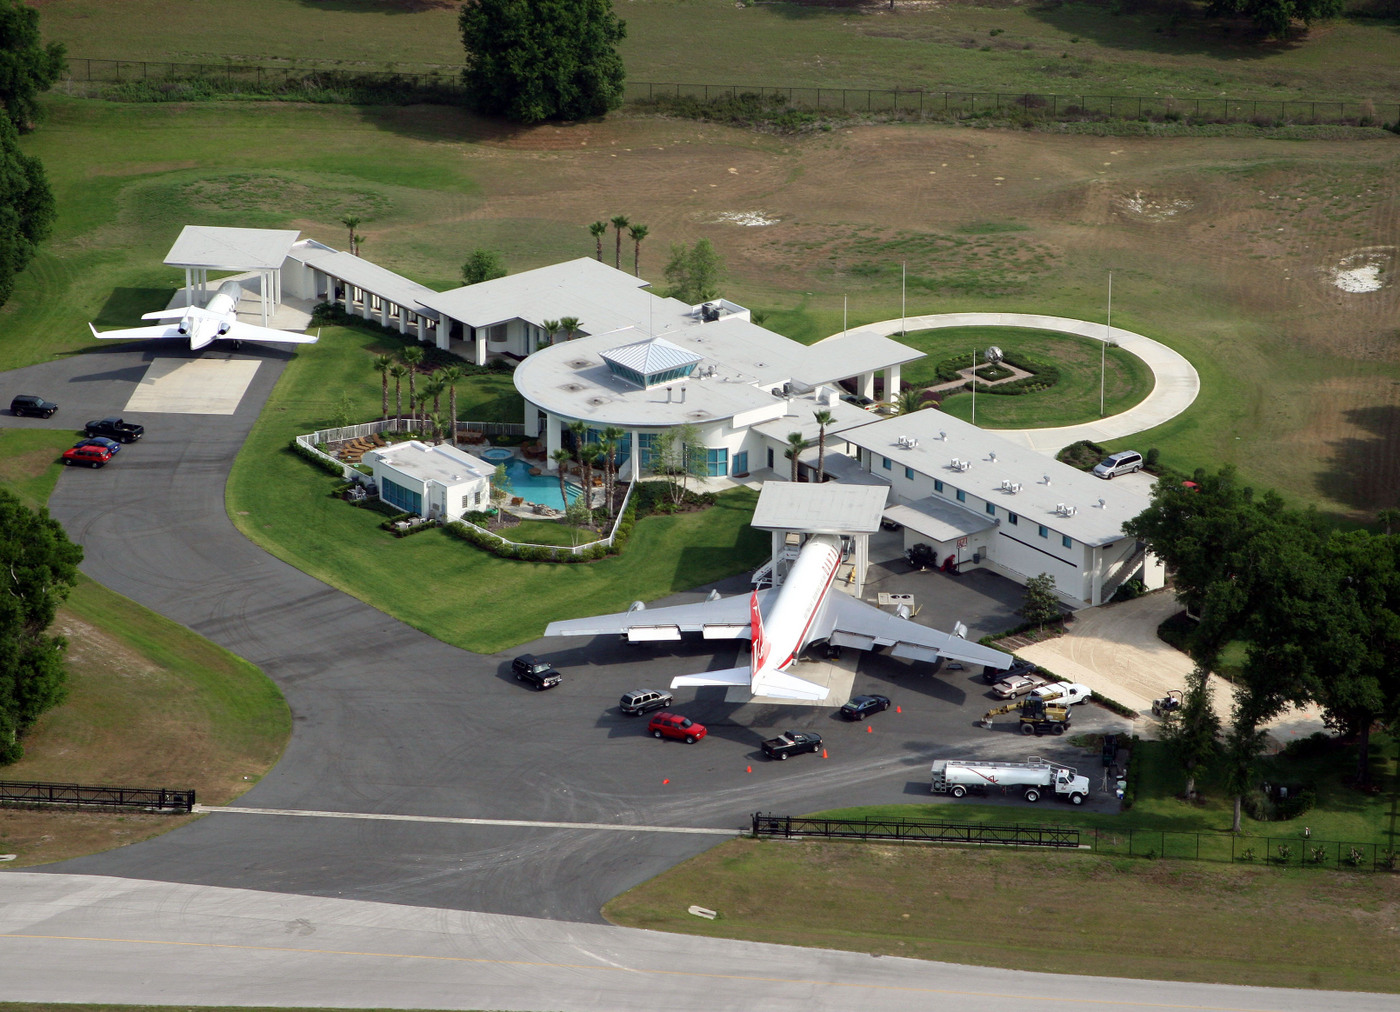 Actor John Travolta's airport home in Florida